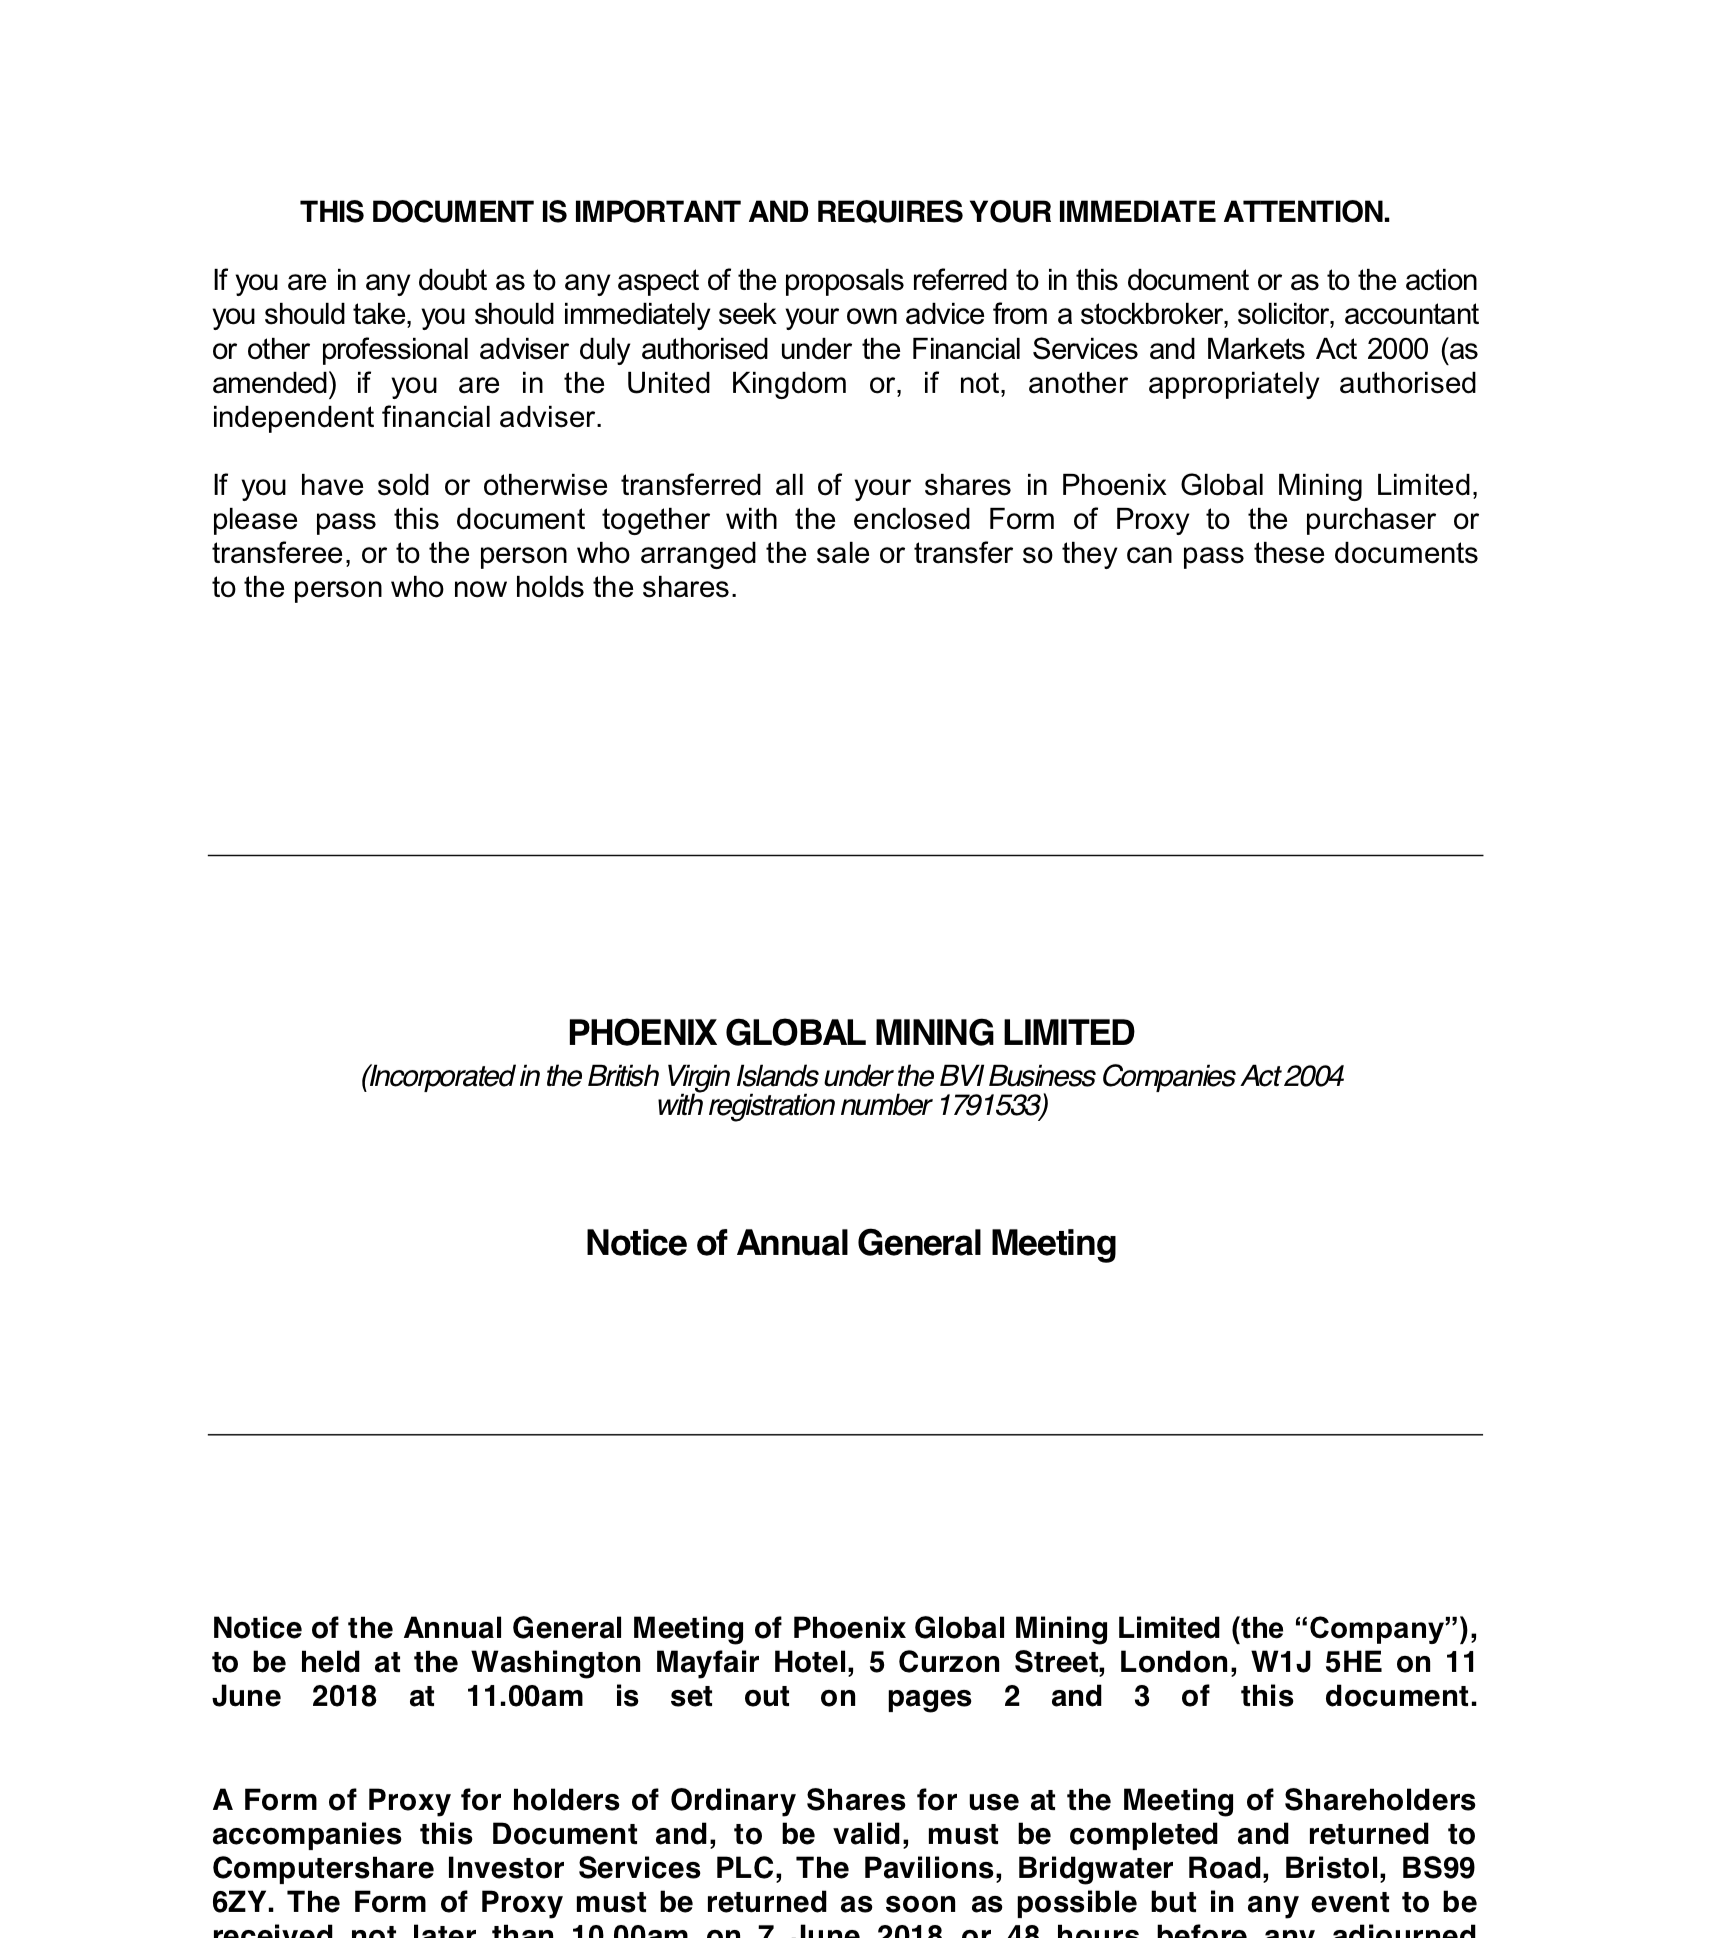 Notice of Annual General Meering - 17 May 2018Notice of the Annual General Meeting of Phoenix Global Mining Limited to be held on 11 June 2018